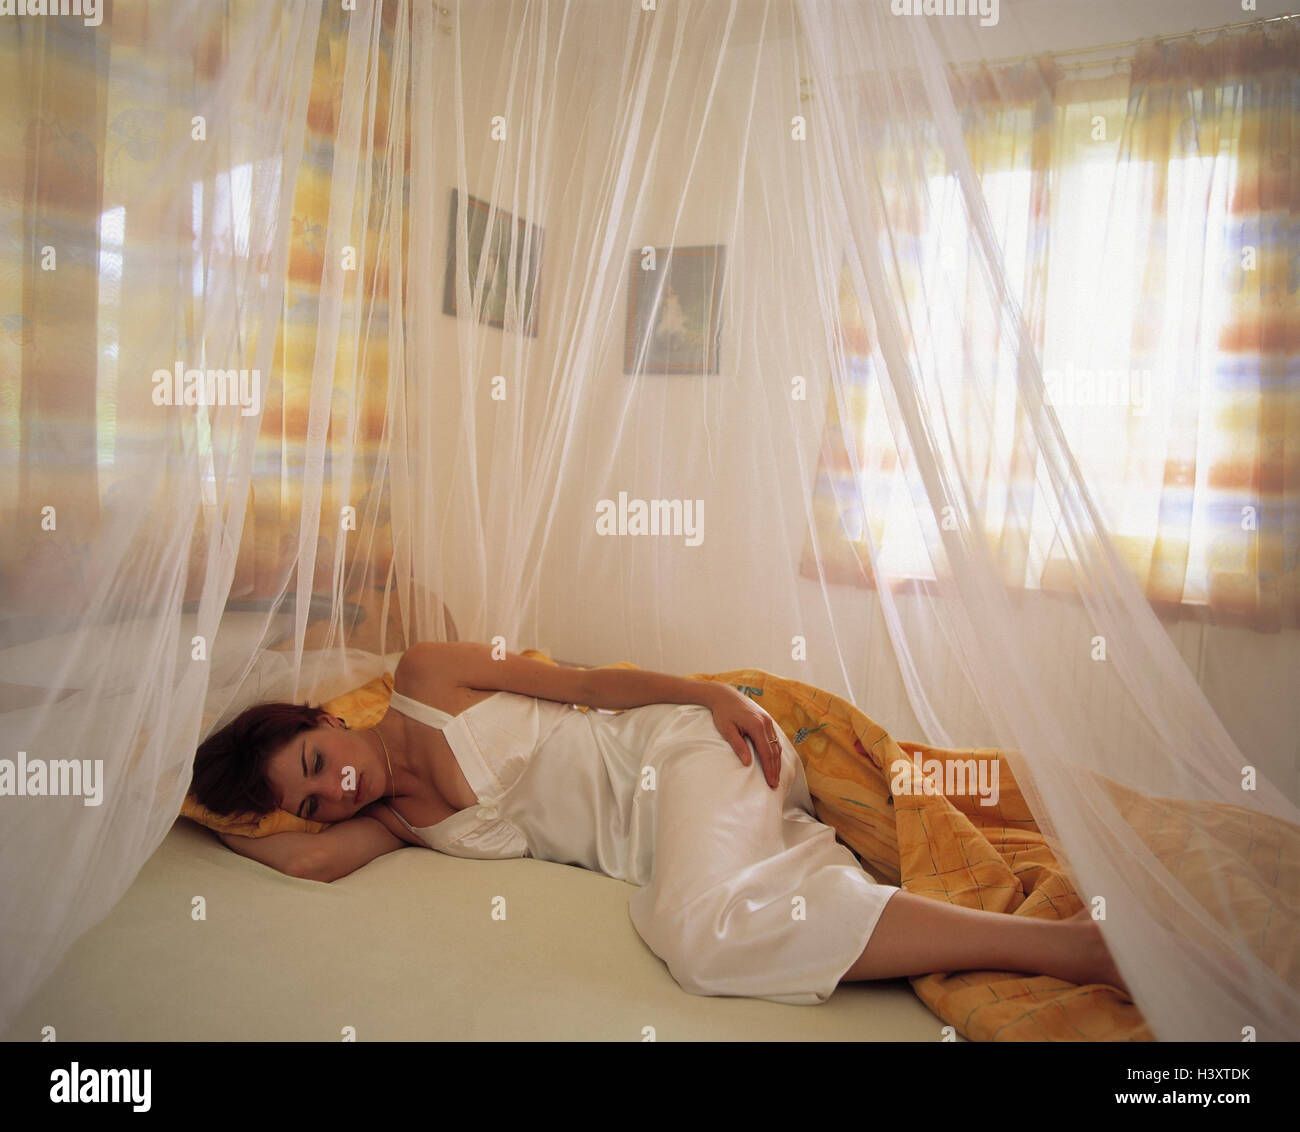 Woman, bed, sleep, mosquito net bedrooms, young, lie, sting mosquito protection, network, protection, mosquitoes, - Stock Image